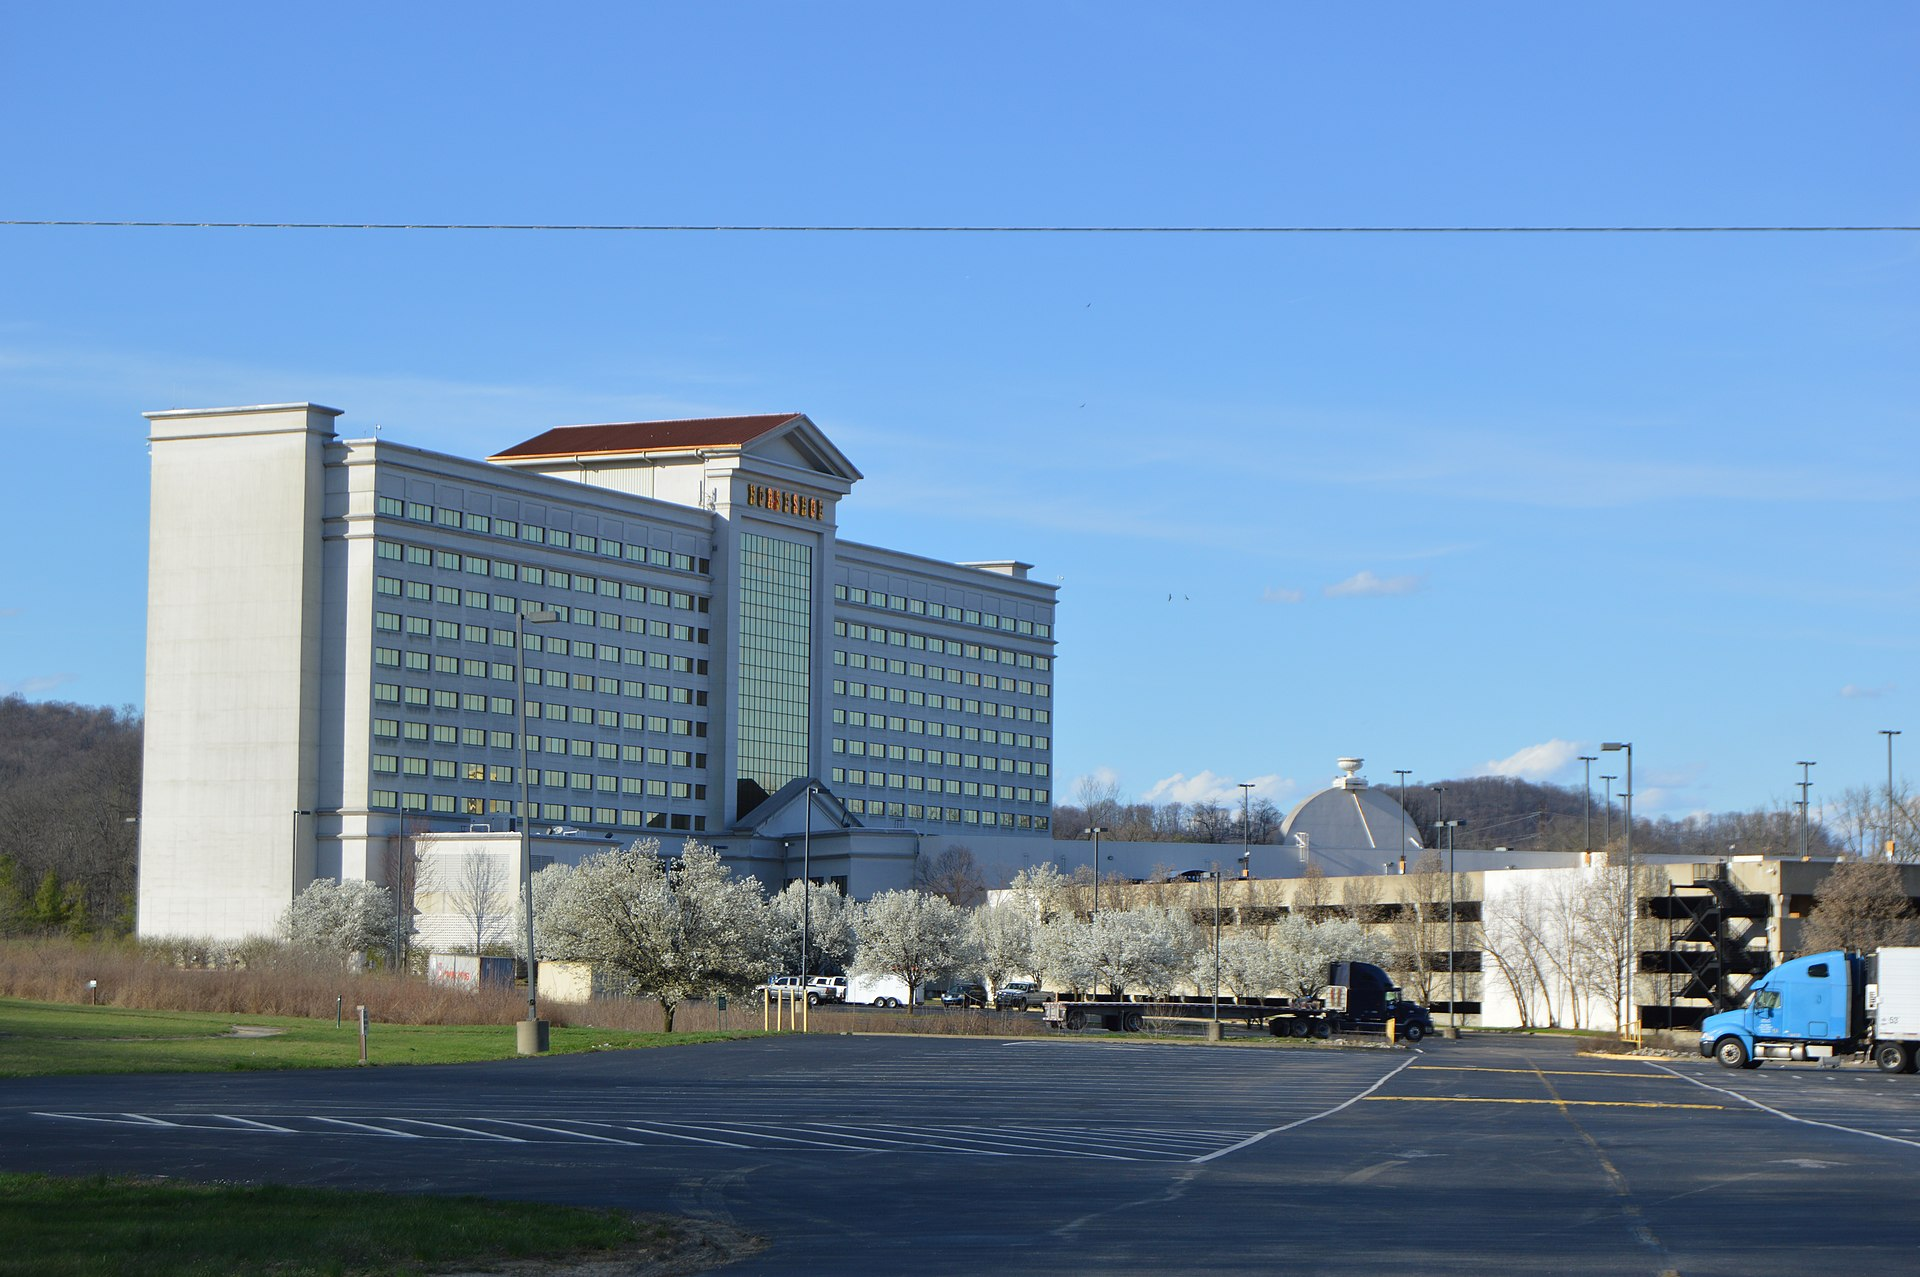 Horseshoe casino location indiana